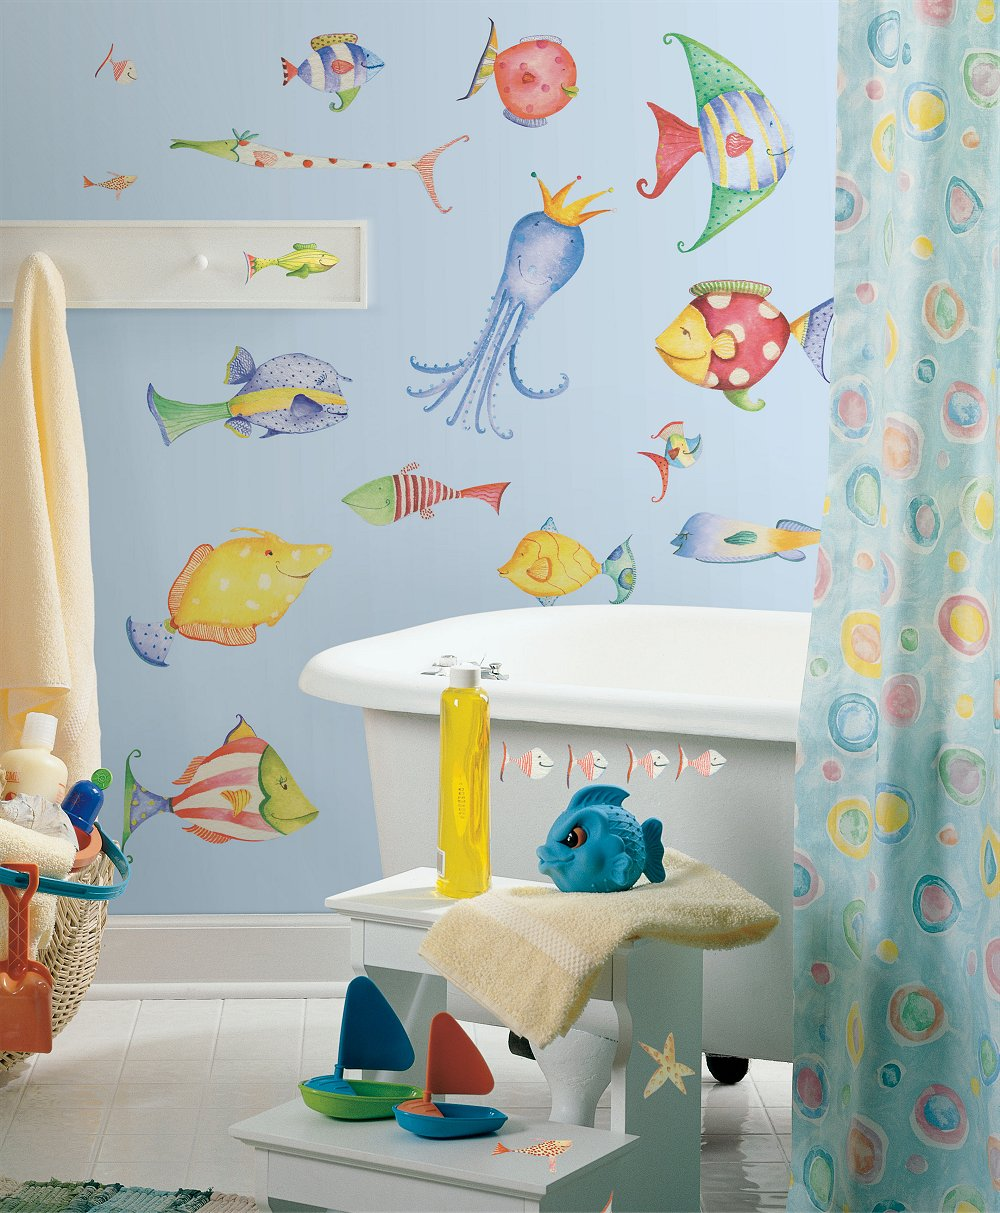 ... Bathroom Keep Beach Themed Master For Kids Using White Porcelain  ...